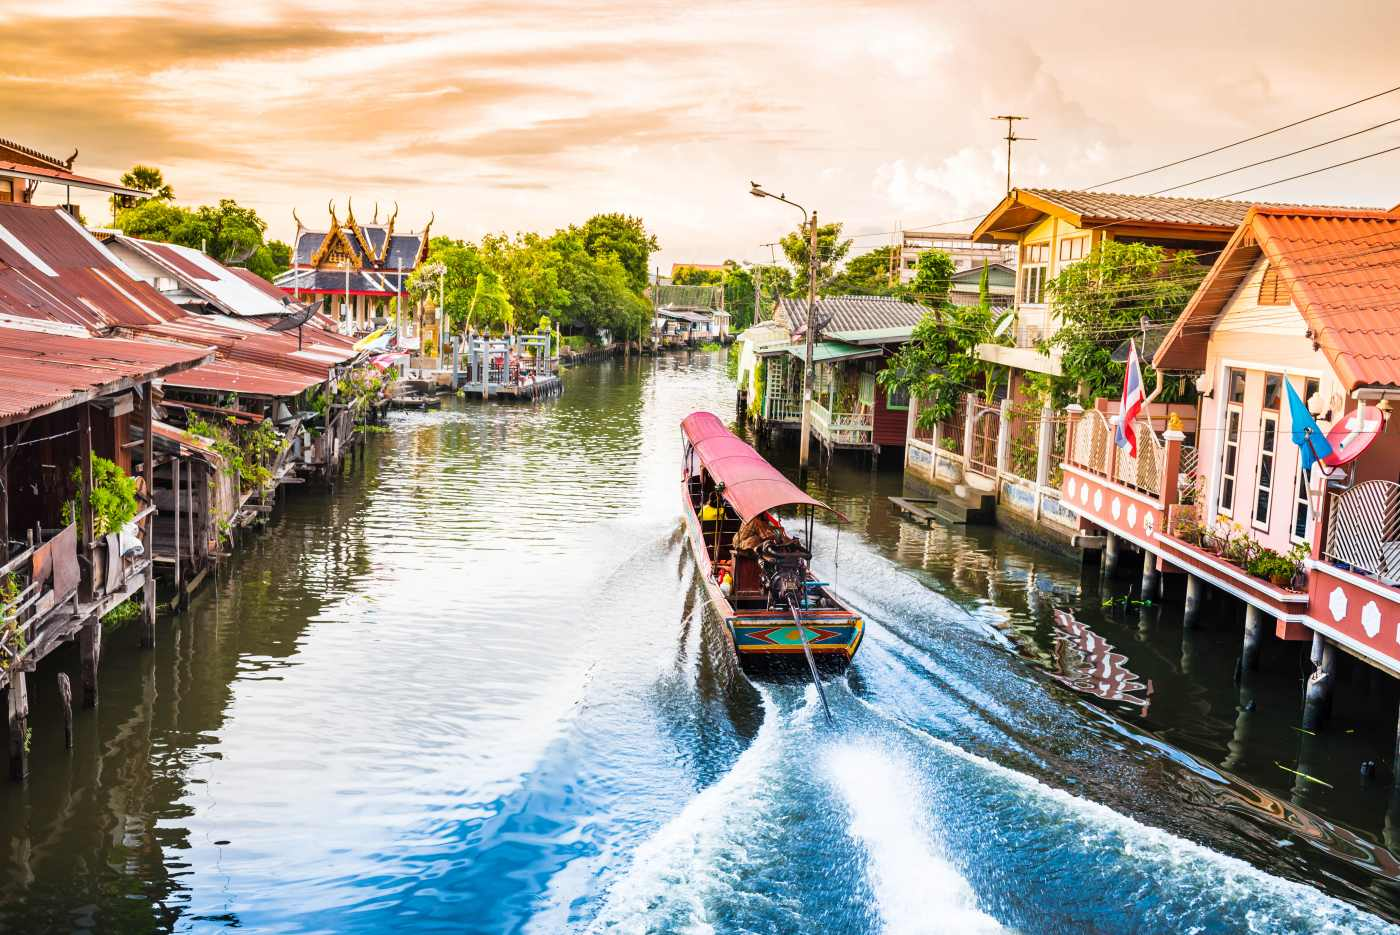 1400 boat for travel in canallBangkok Thailand shutterstock 488243272